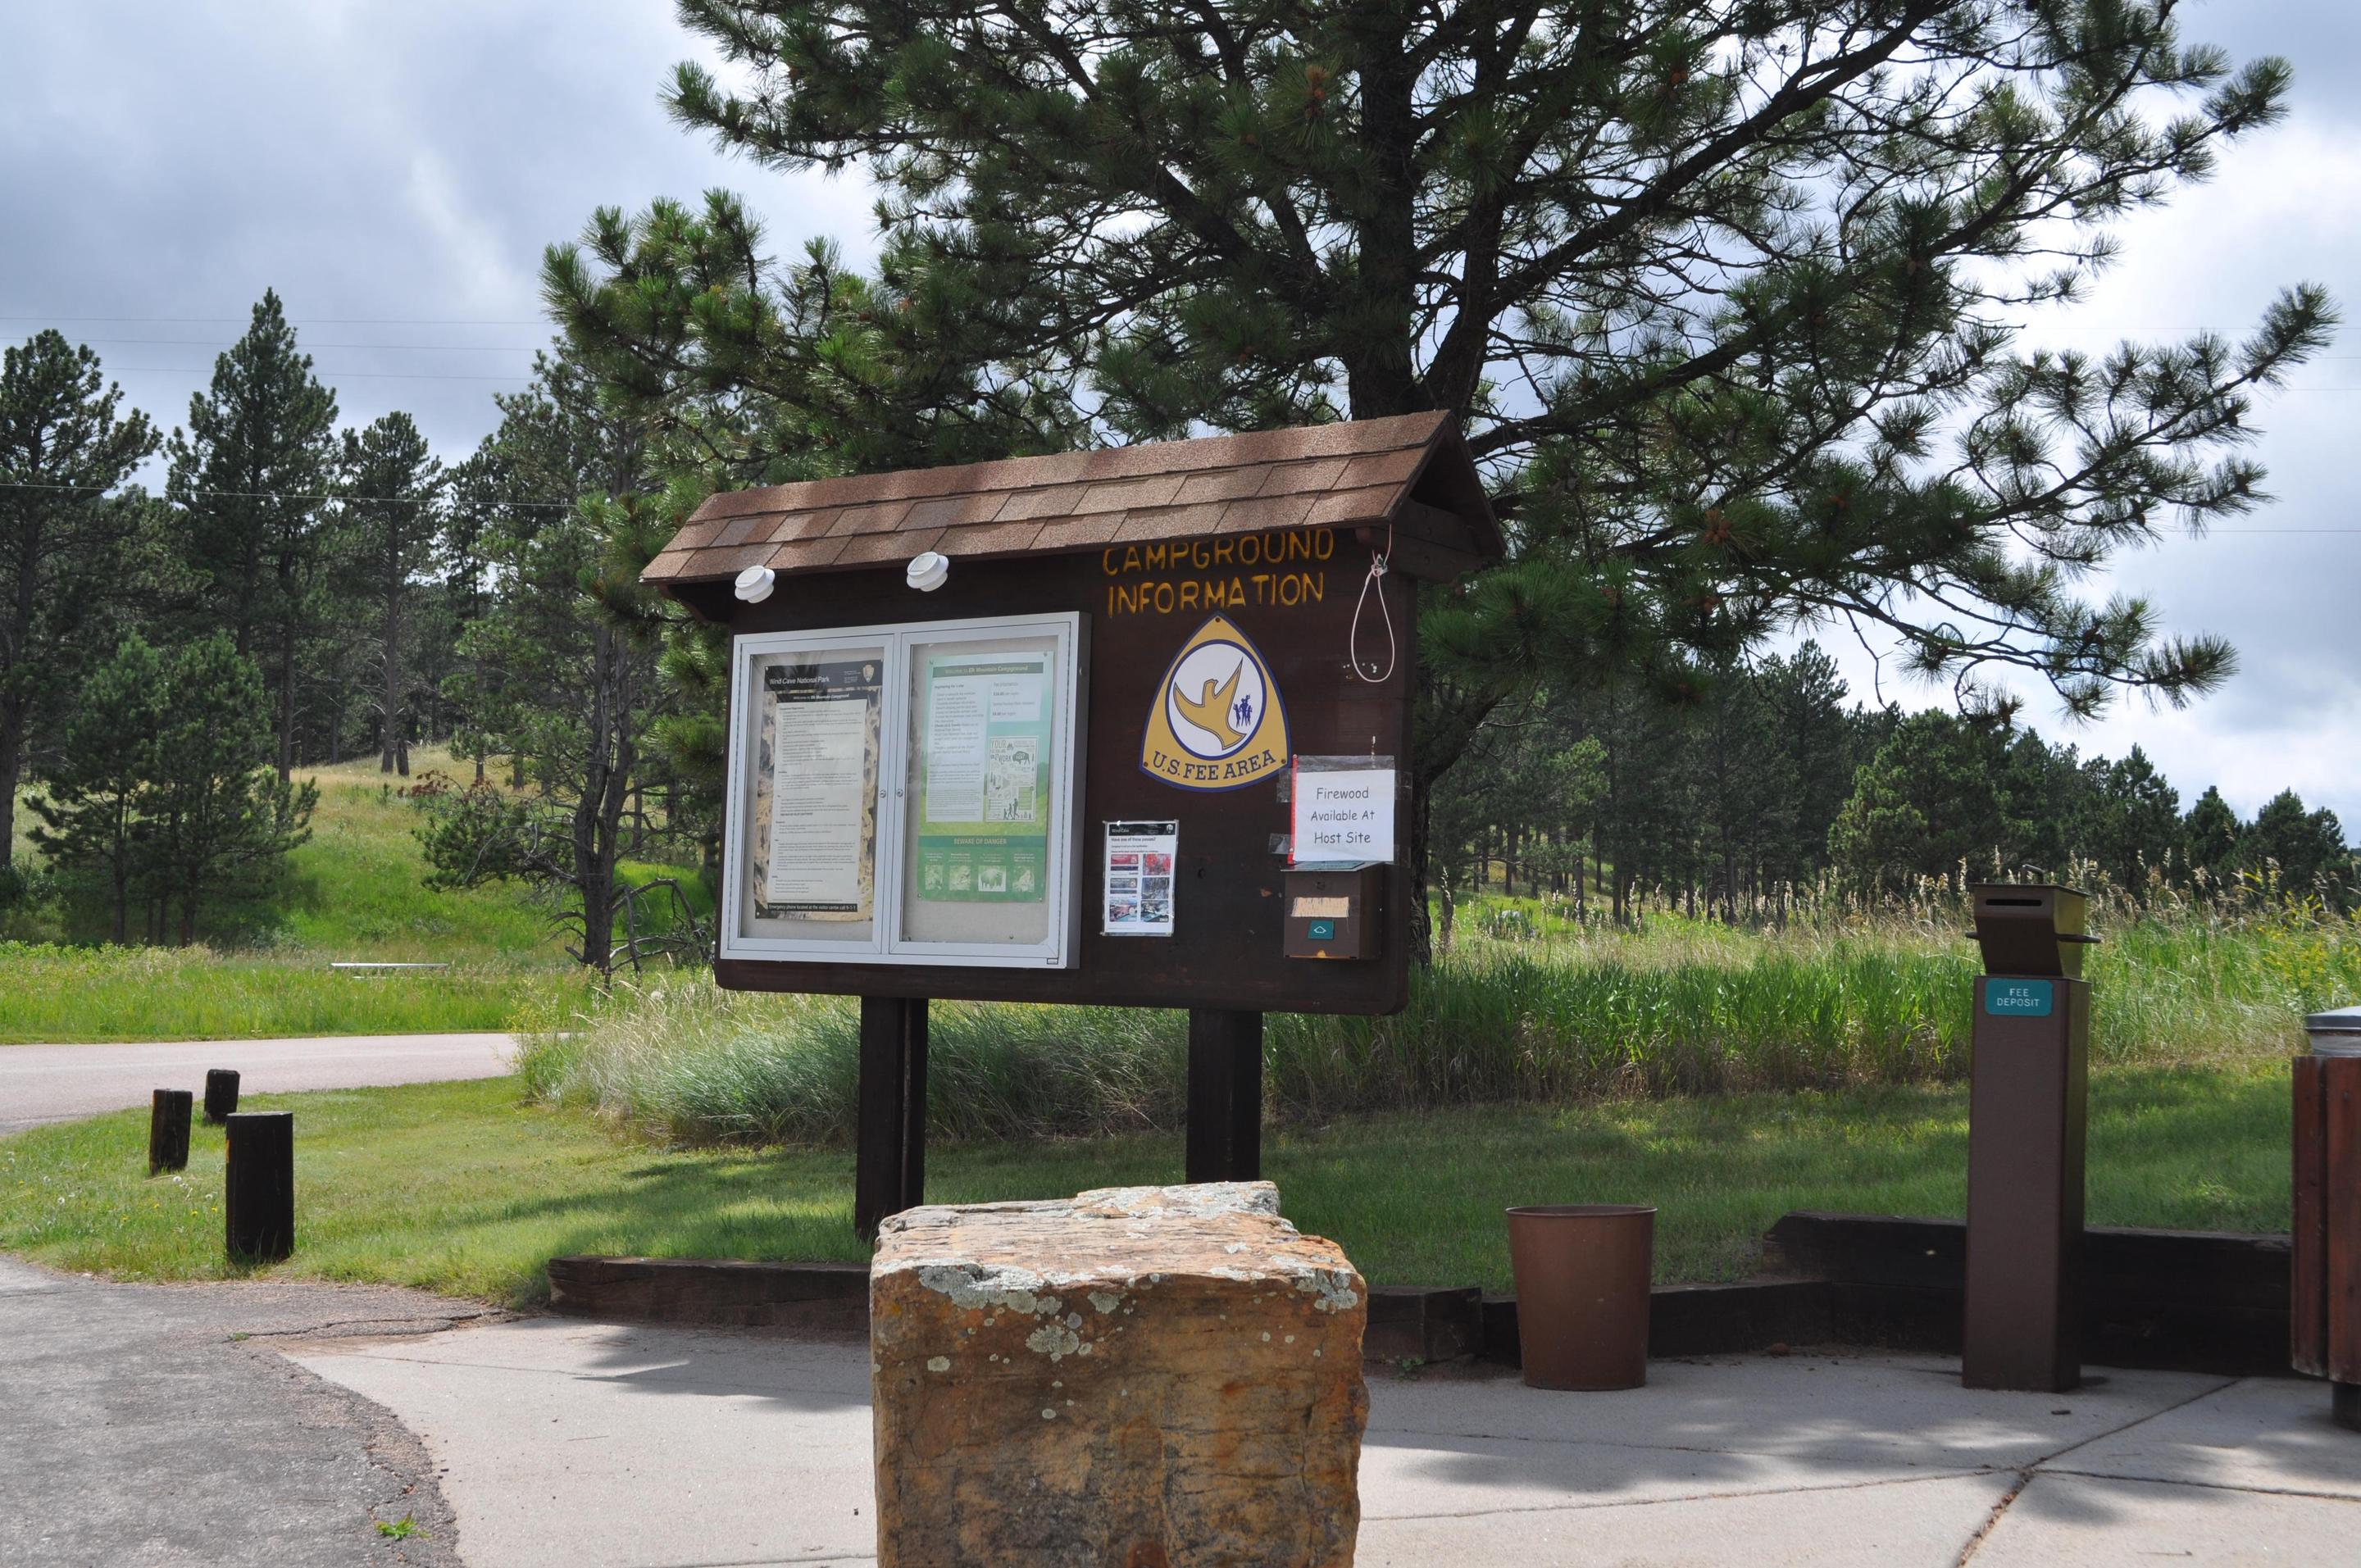 Elk Mountain Campground Registration BoardThe Elk Mountain Campground is a first-come, first-served site. Campers can register the campsite of their choice the day of their stay, and drop their cash payment in the drop box.